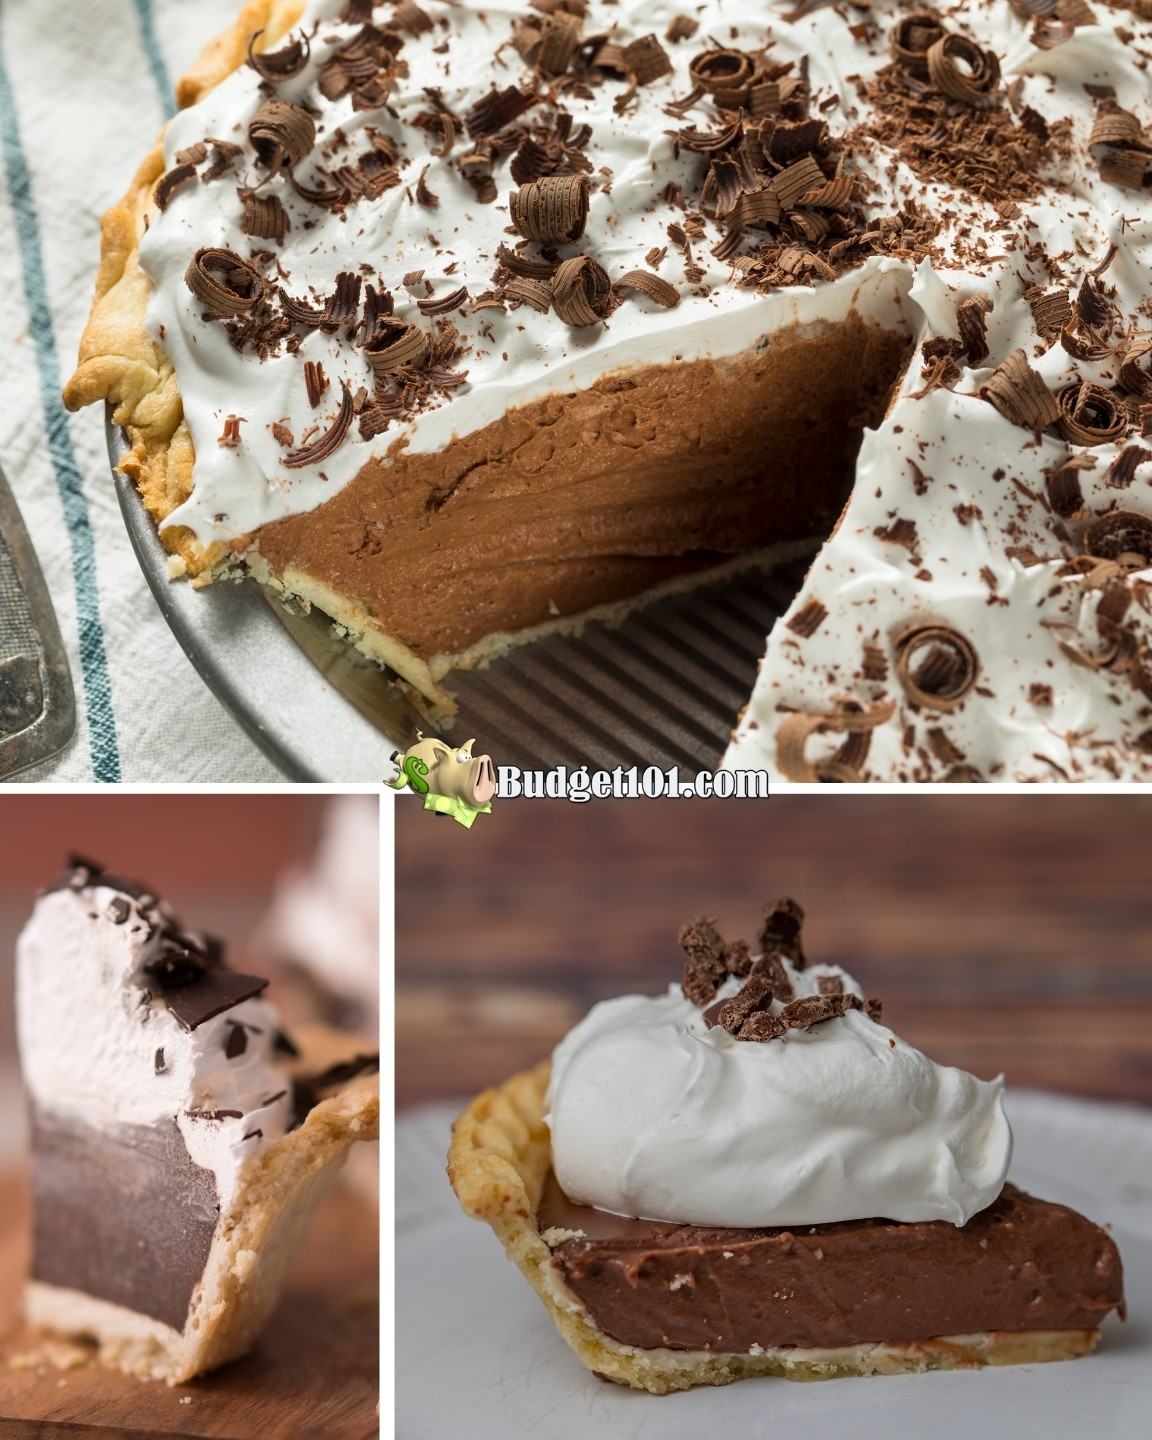 Chocolate Cream Pie can be made ahead of time and frozen, but there's a trick to it. Here's how we make chocolate cream pie weeks before thanksiving to save time on the big day #ChocolateCreamPie #OAMC #MakeAhead #FilltheFreezer #Budget101